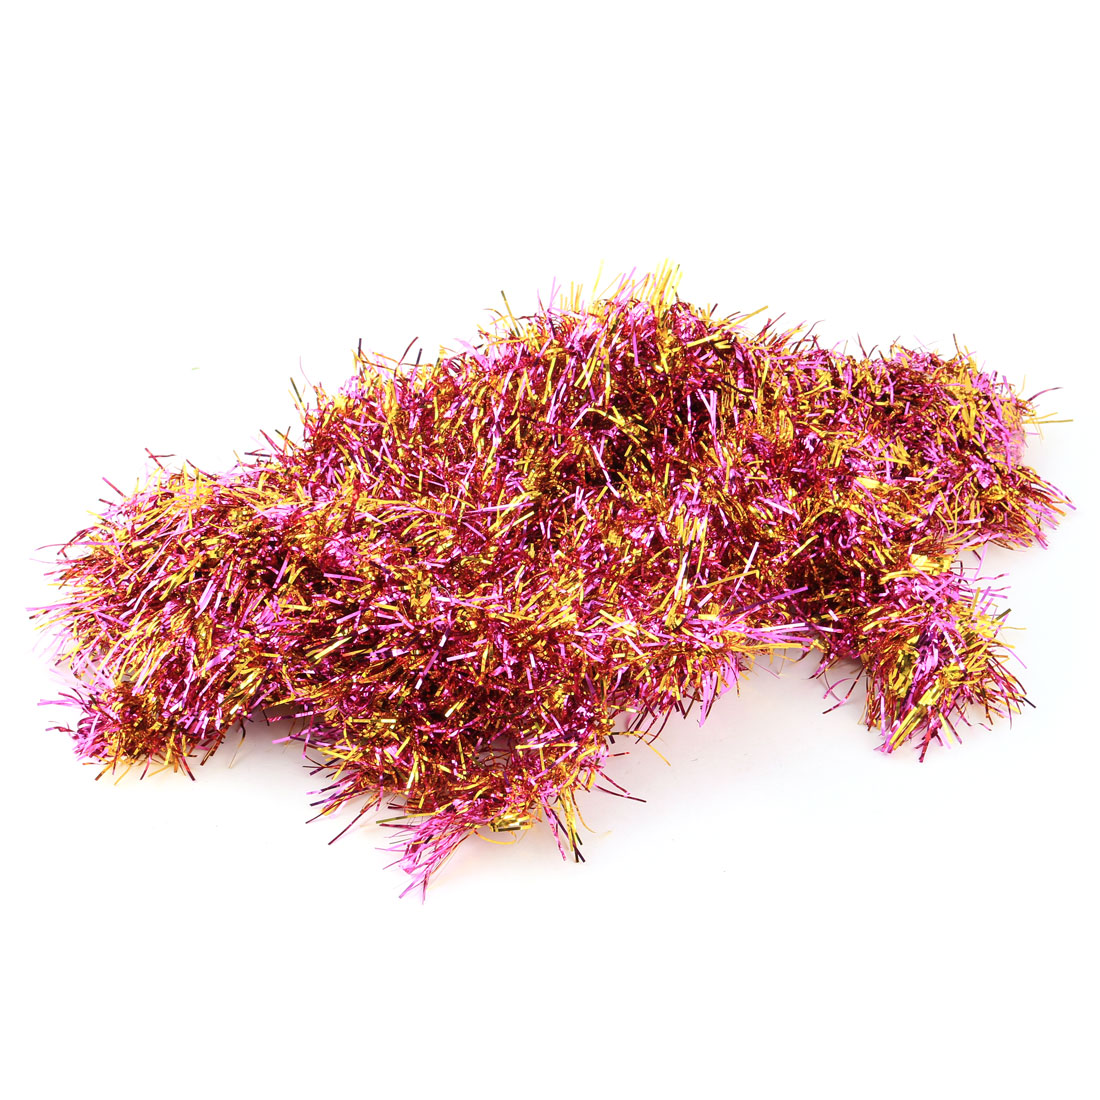 Festival Party Shining Hanging Ornament Tinsel Garland Purple and Gold Tone 1.9M 5 PCS